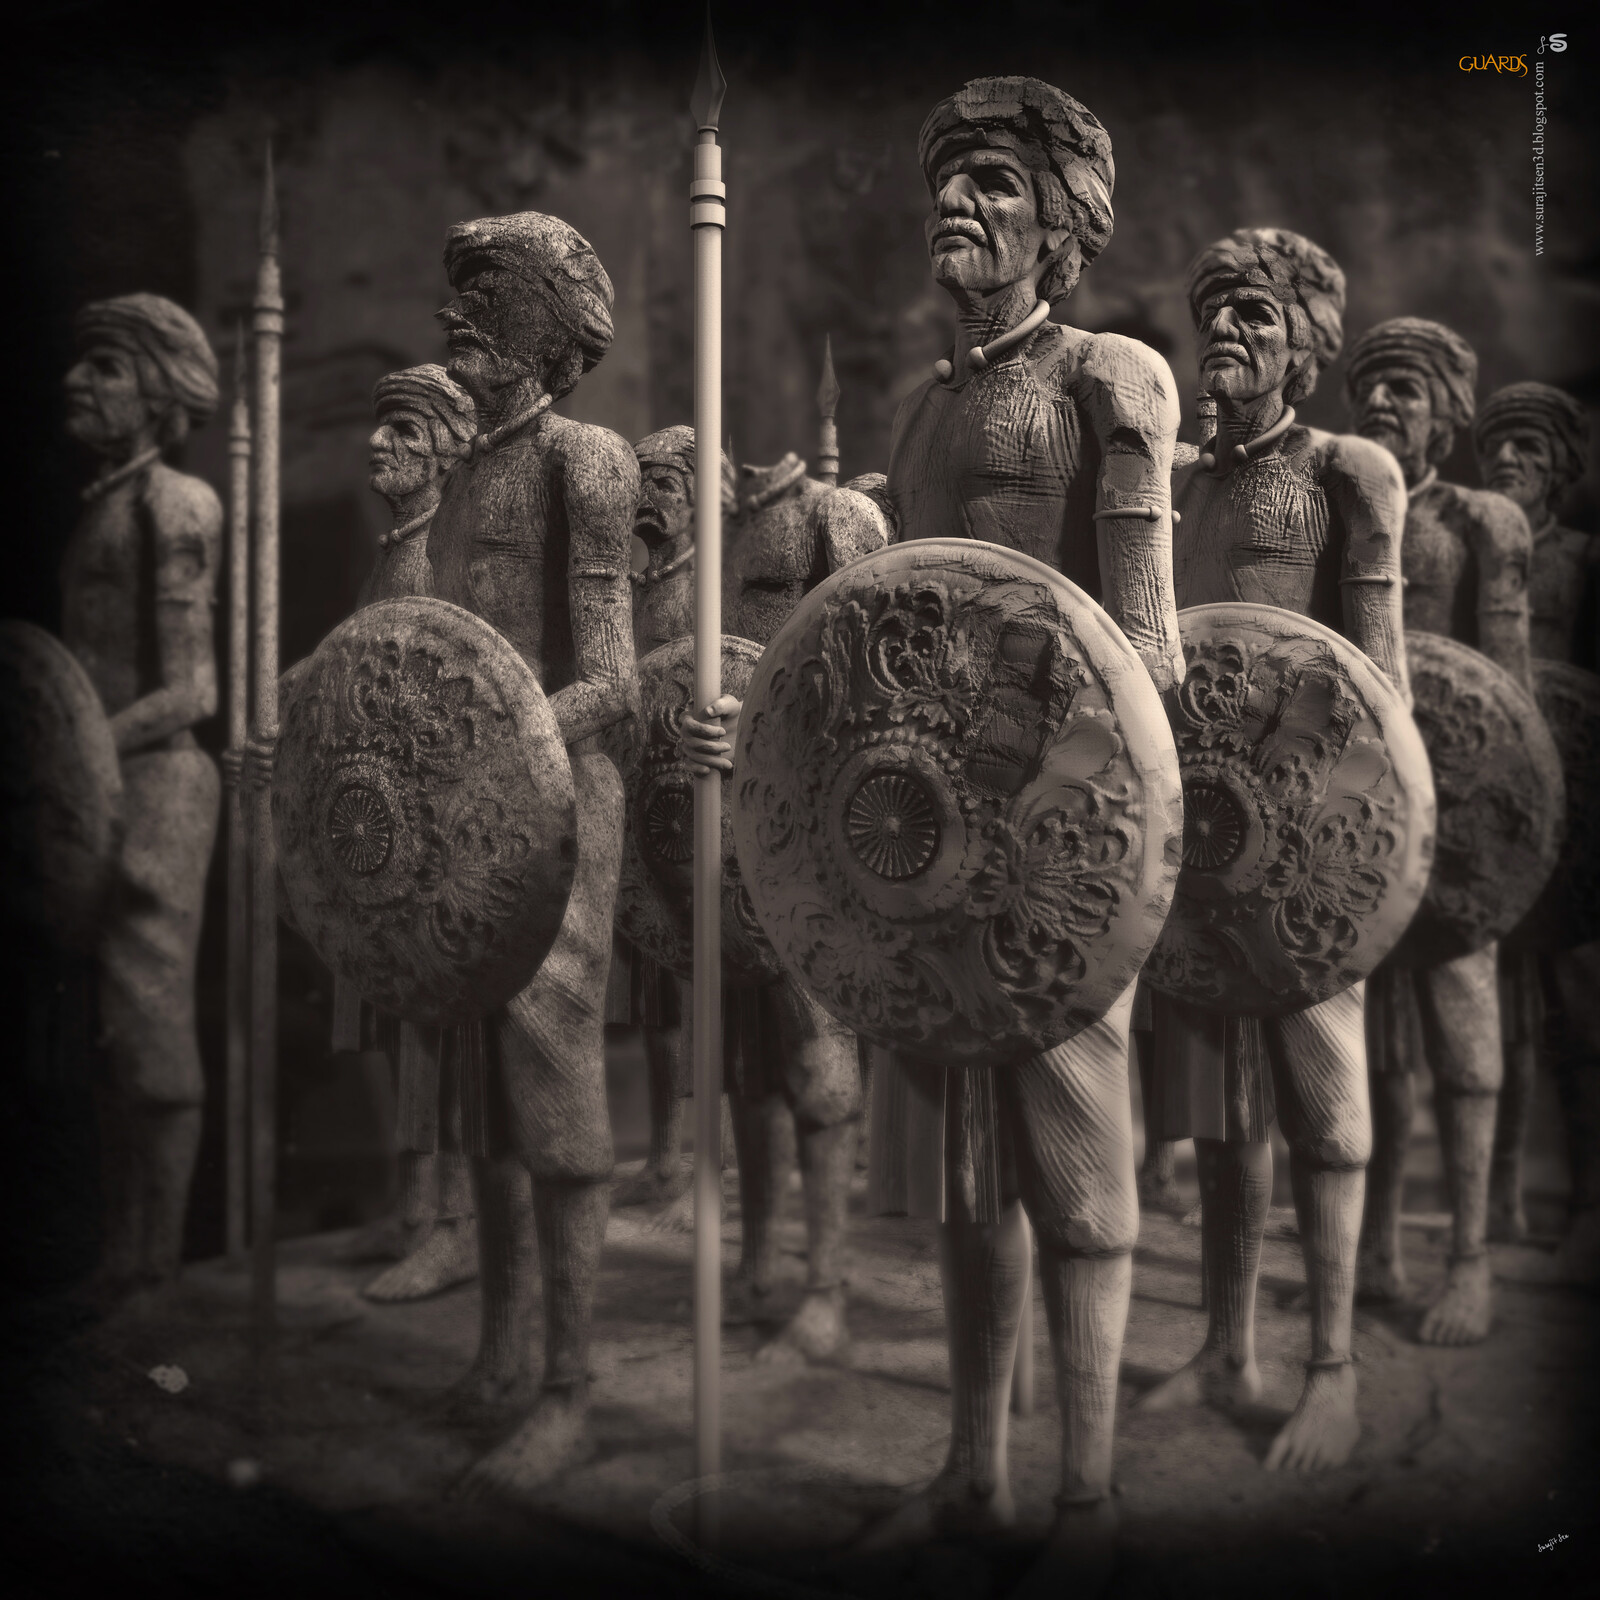 Guards My weekend study works. One of my old concepts… Digital Sculpture. Wish to share. Background music- #hanszimmermusic